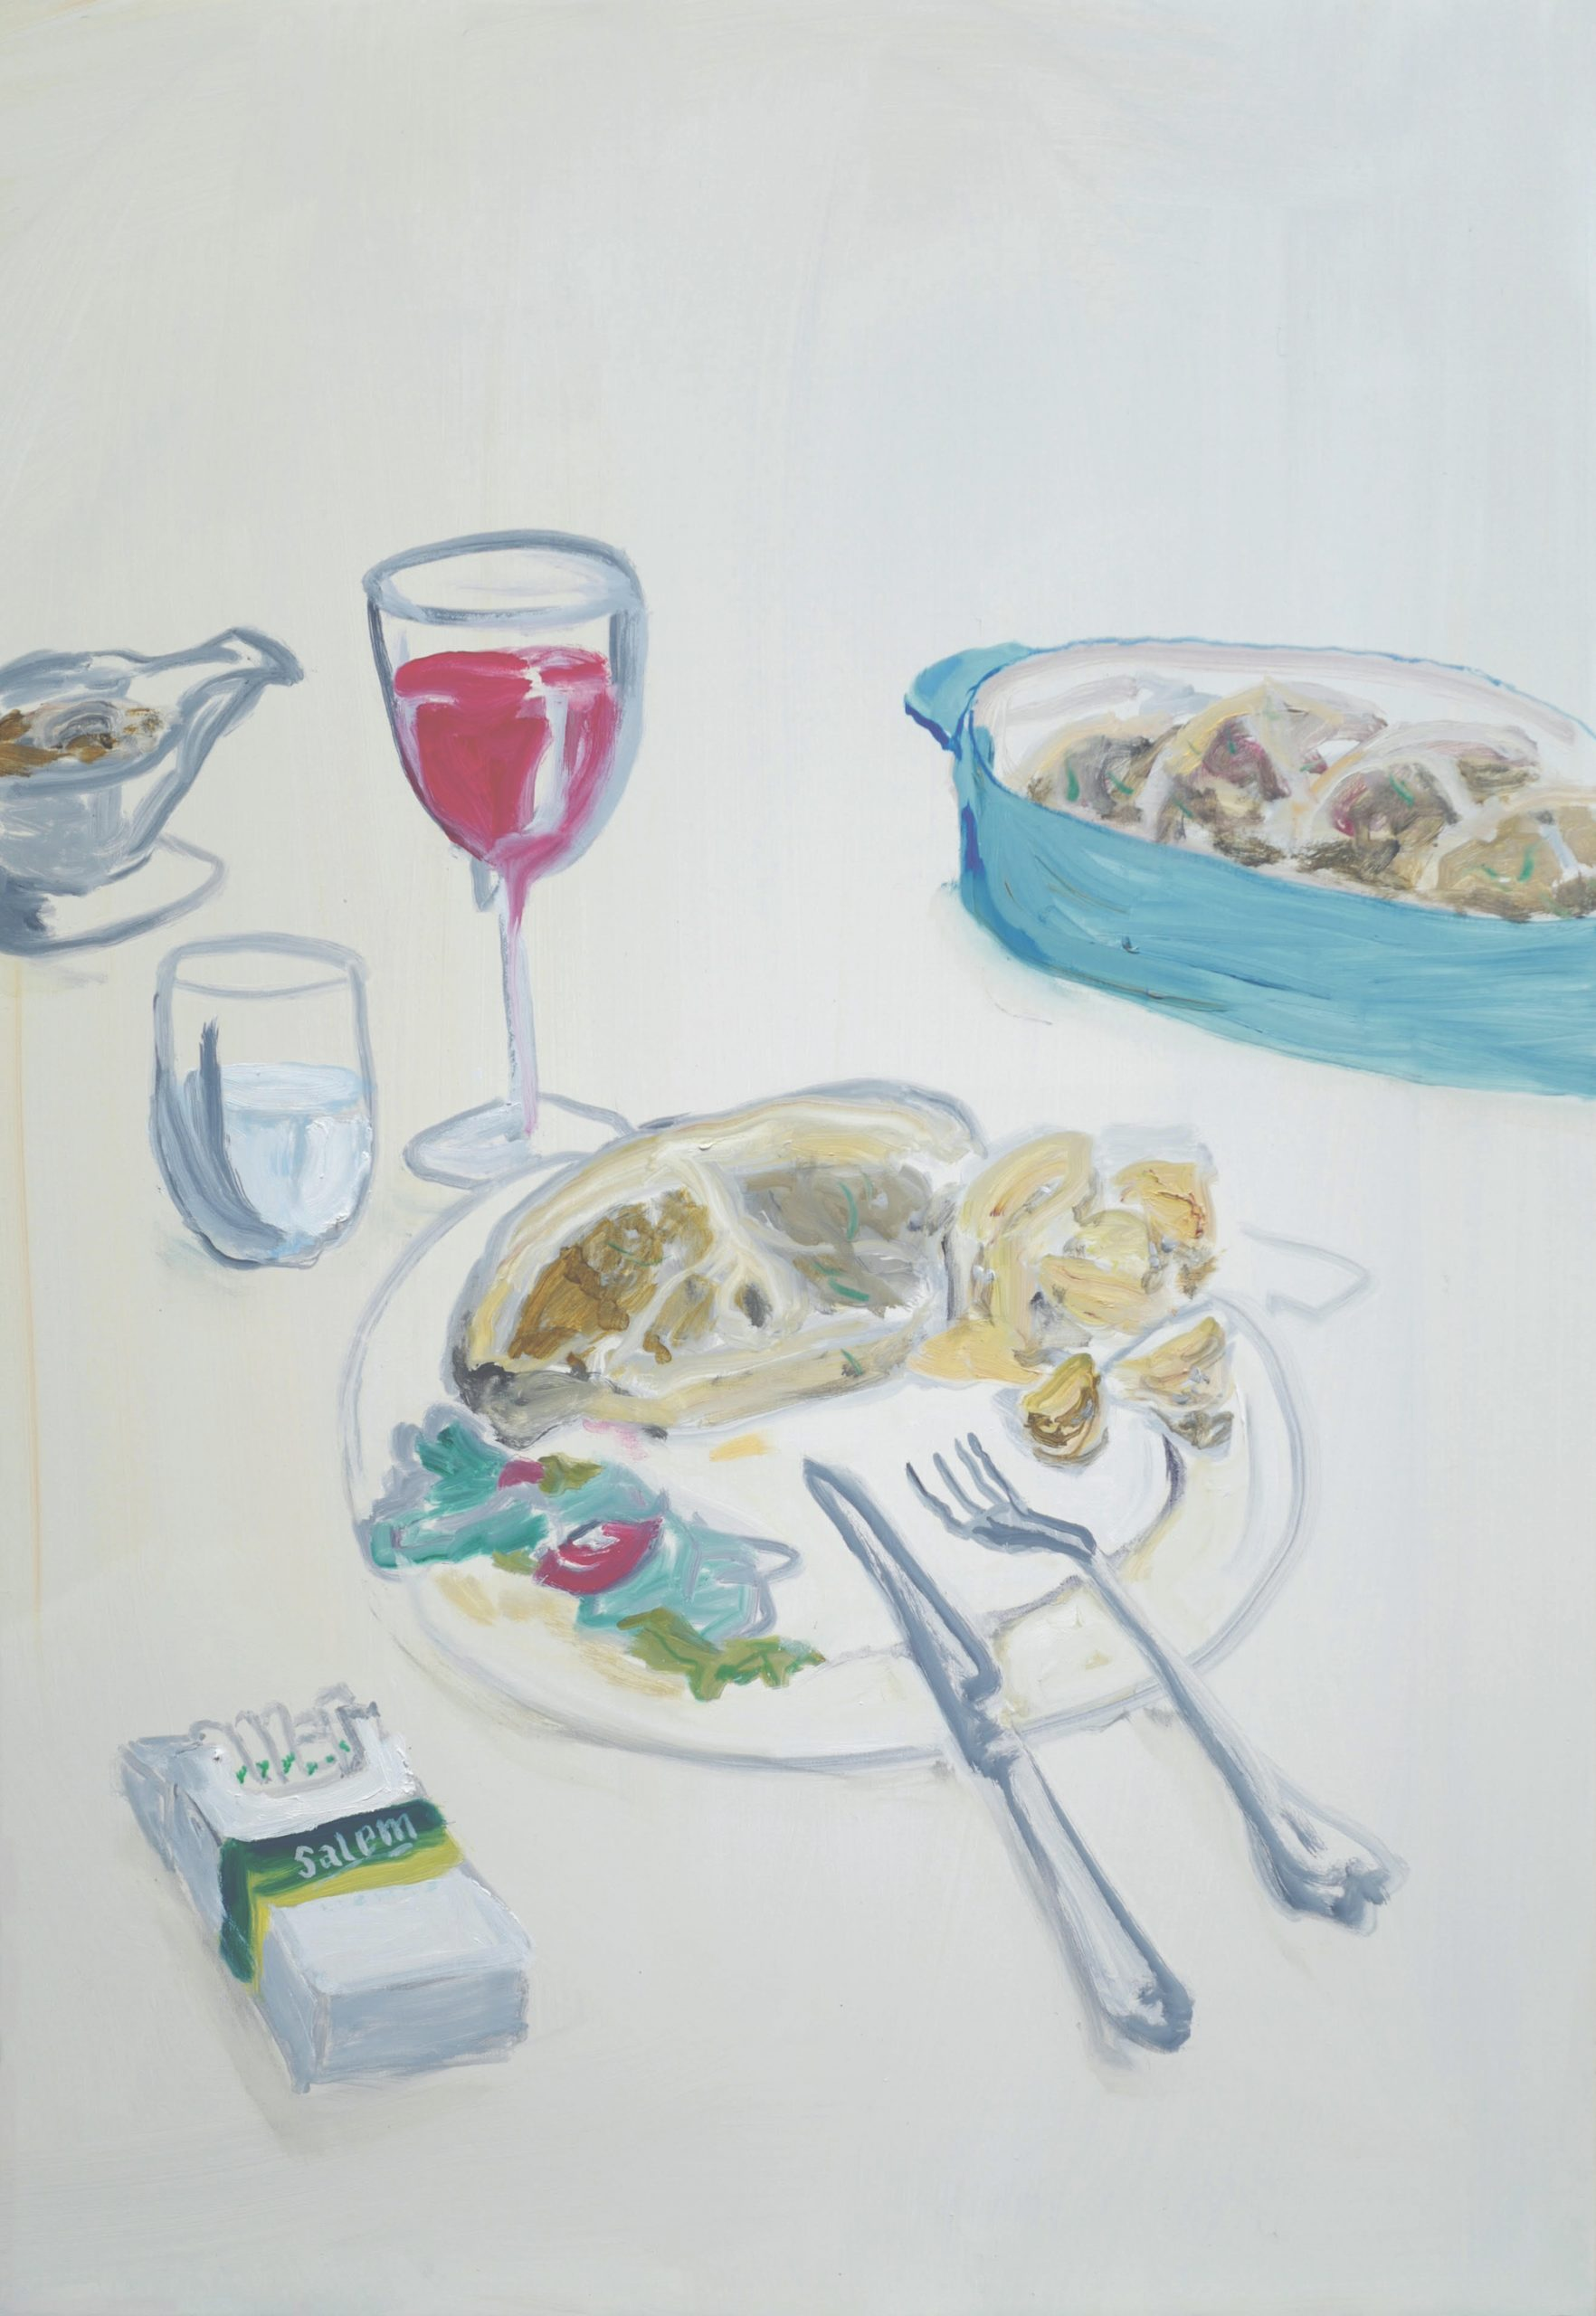 Ragnar Kjartansson, Grilled Lamb Chops with Potatoes, Mushroom Sauce and Salad. Image: A Perfect Evening, 2021. Courtesy of the artist, Luhring Augustine, New York and i8 Gallery, Reykjavik